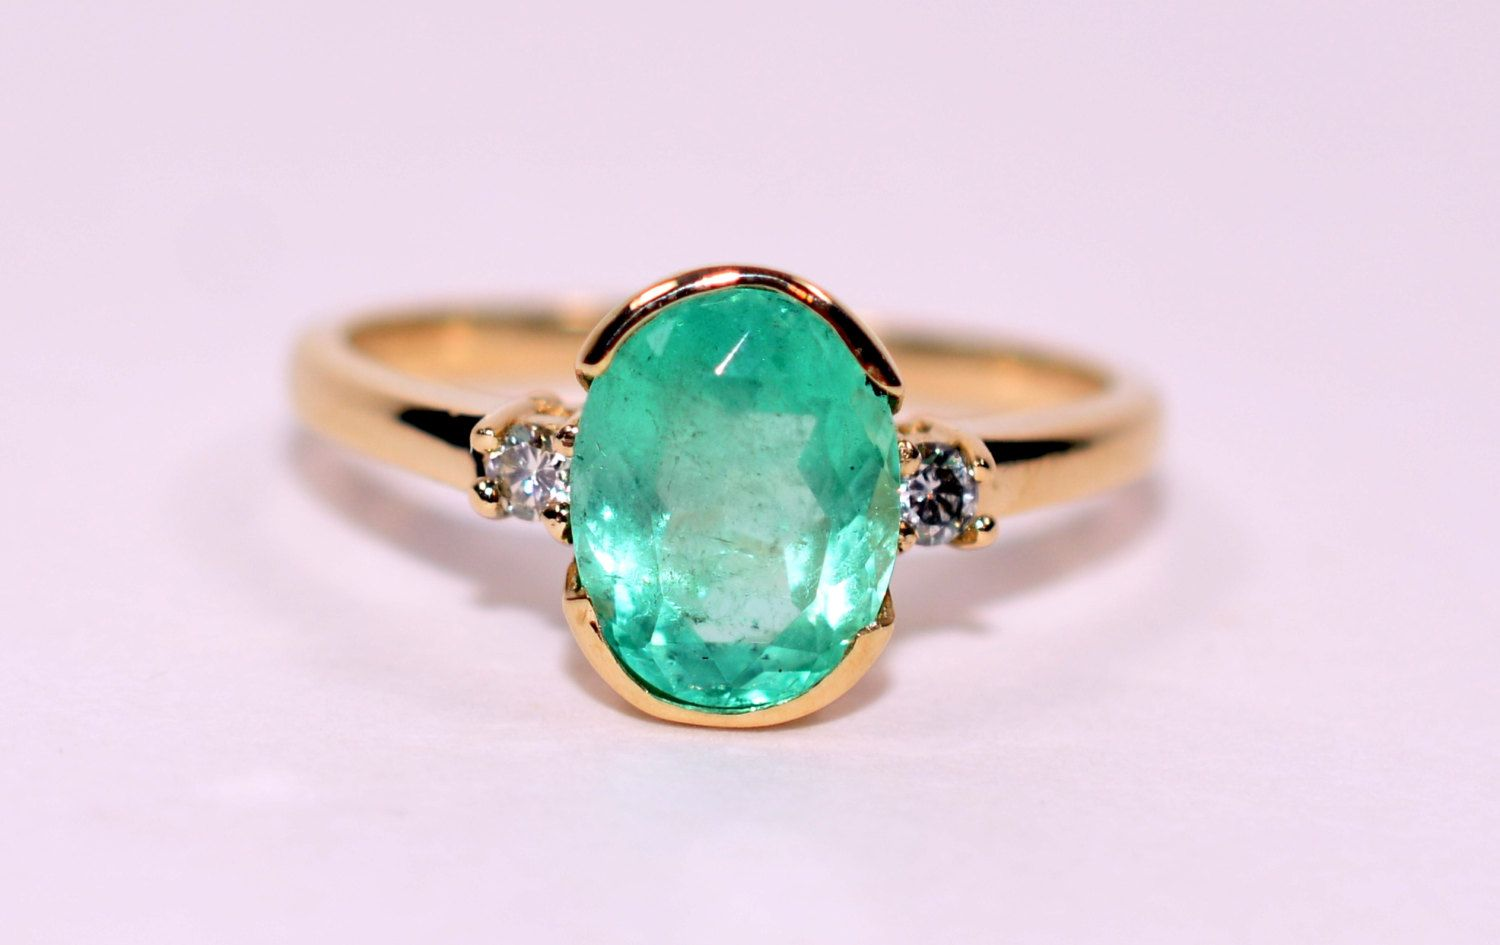 10% OFF SALE!! Angelic 1.55tcw Colombian Emerald & Diamond 14kt Yellow Gold Ring by rareestatefinds4u on Etsy